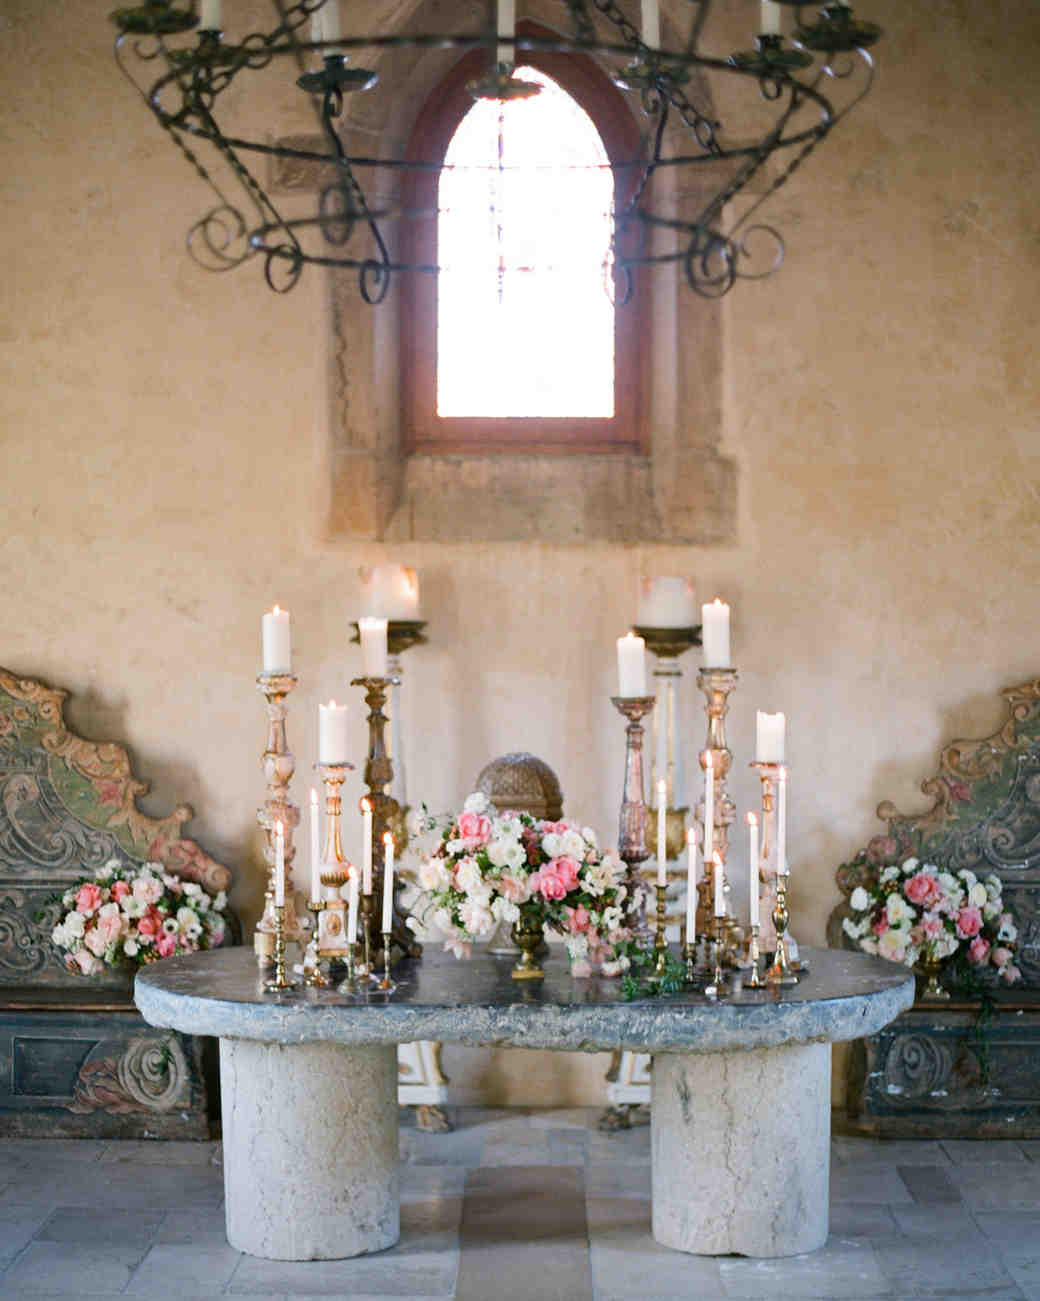 stone table decorated with roses and candles